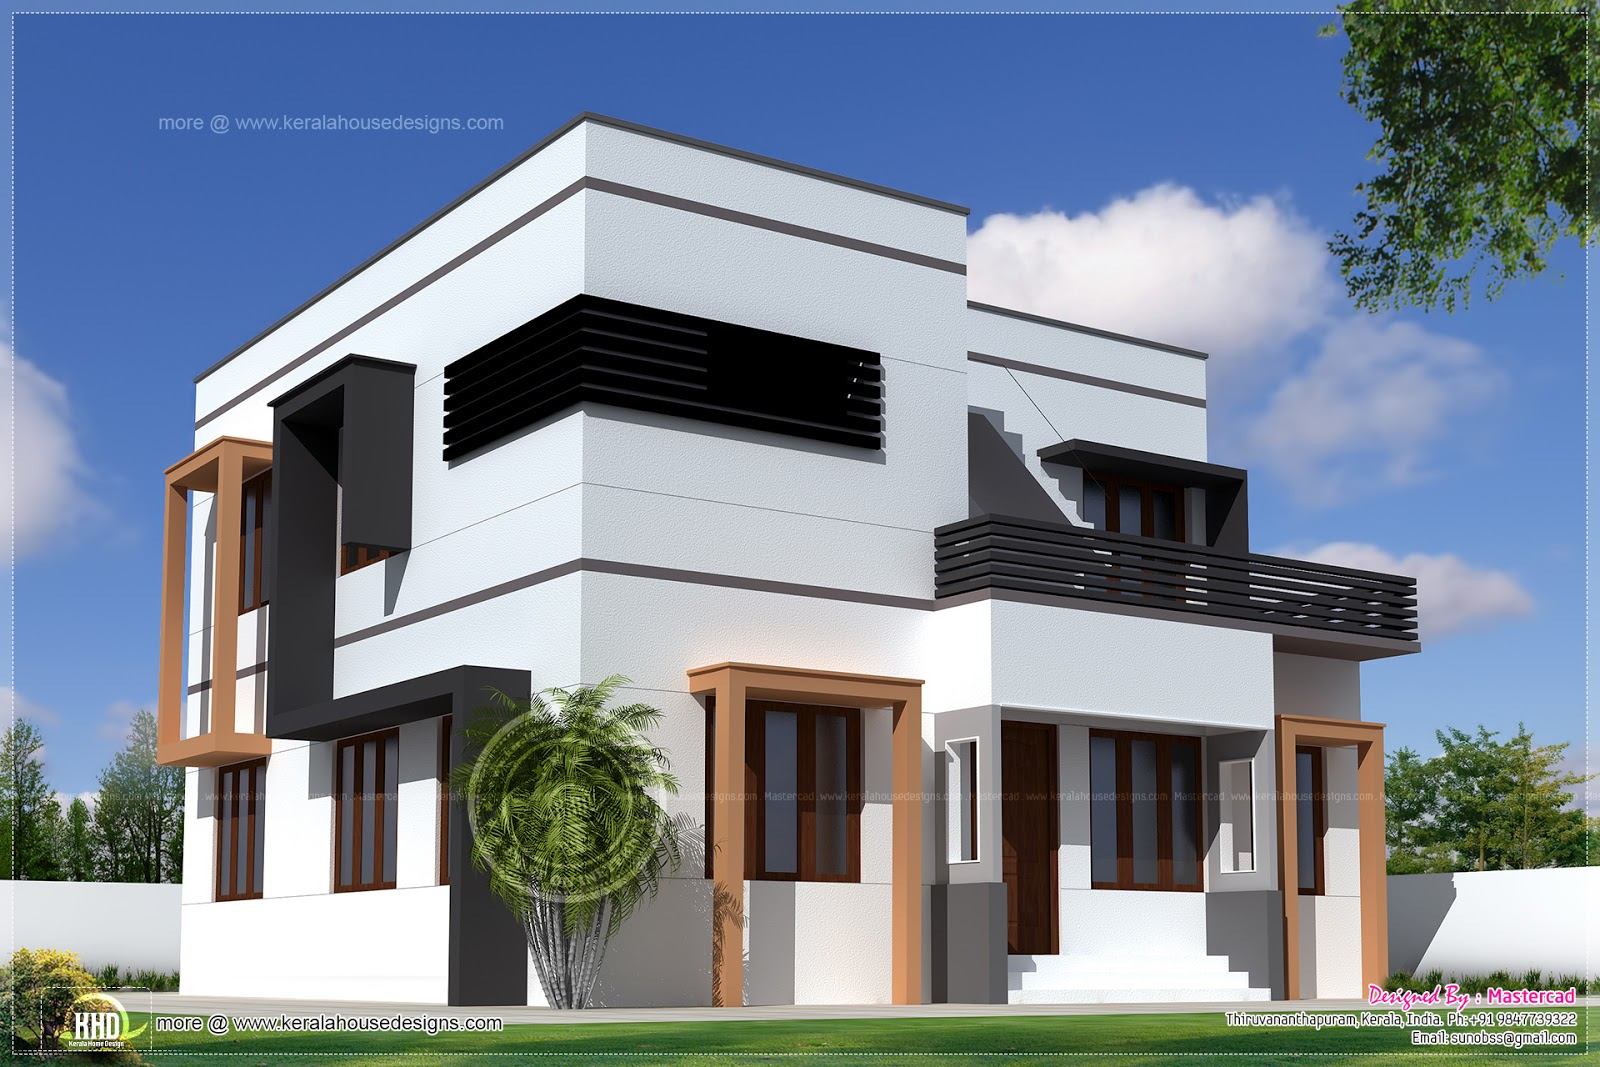 1627 square feet modern villa exterior house design plans Modern square house